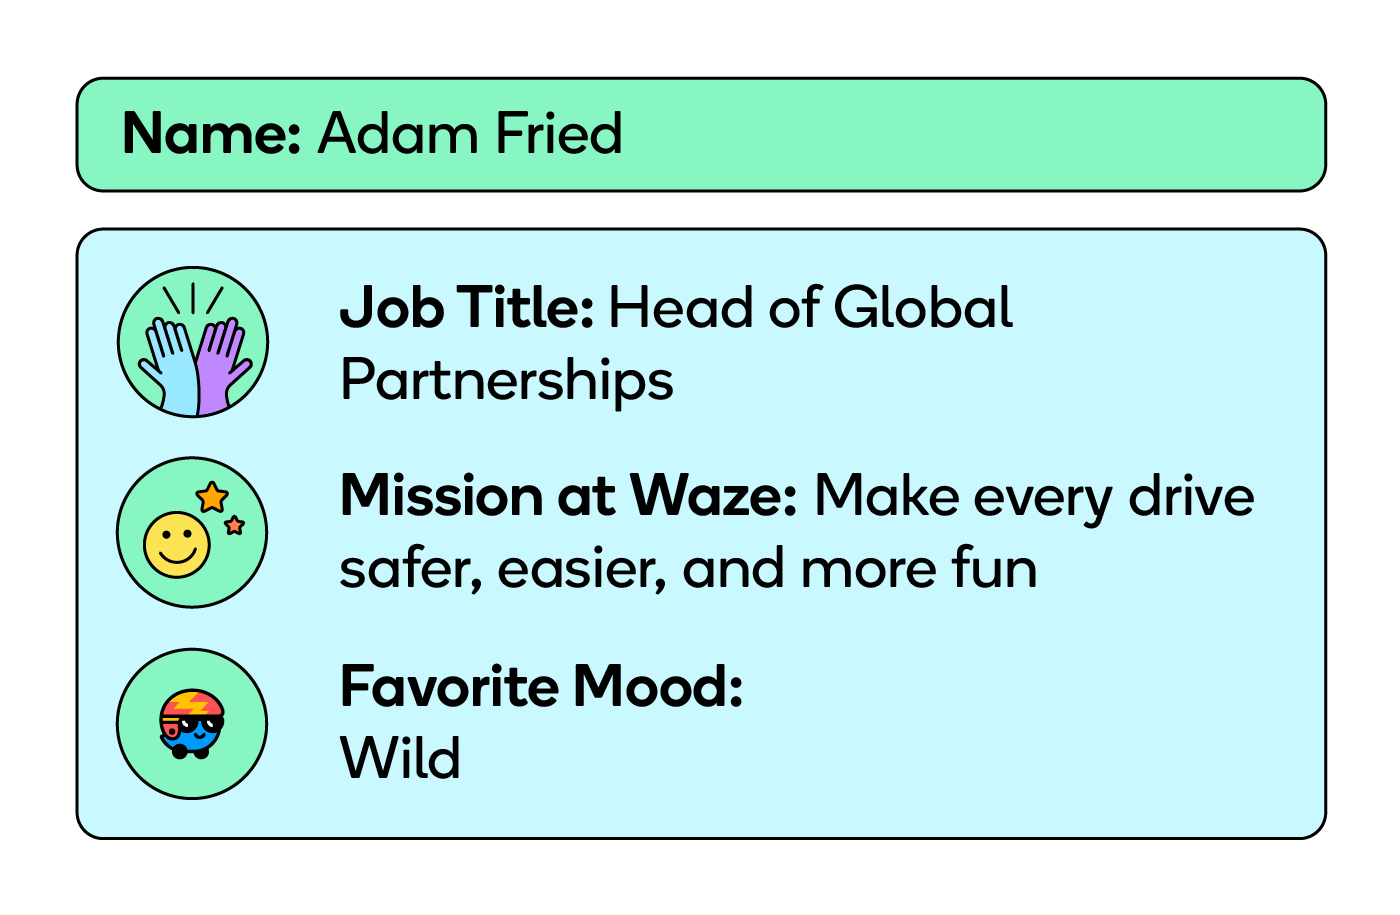 Adam Fried, the Head of Global Partnerships at Waze, helped make the CarPlay integration possible.